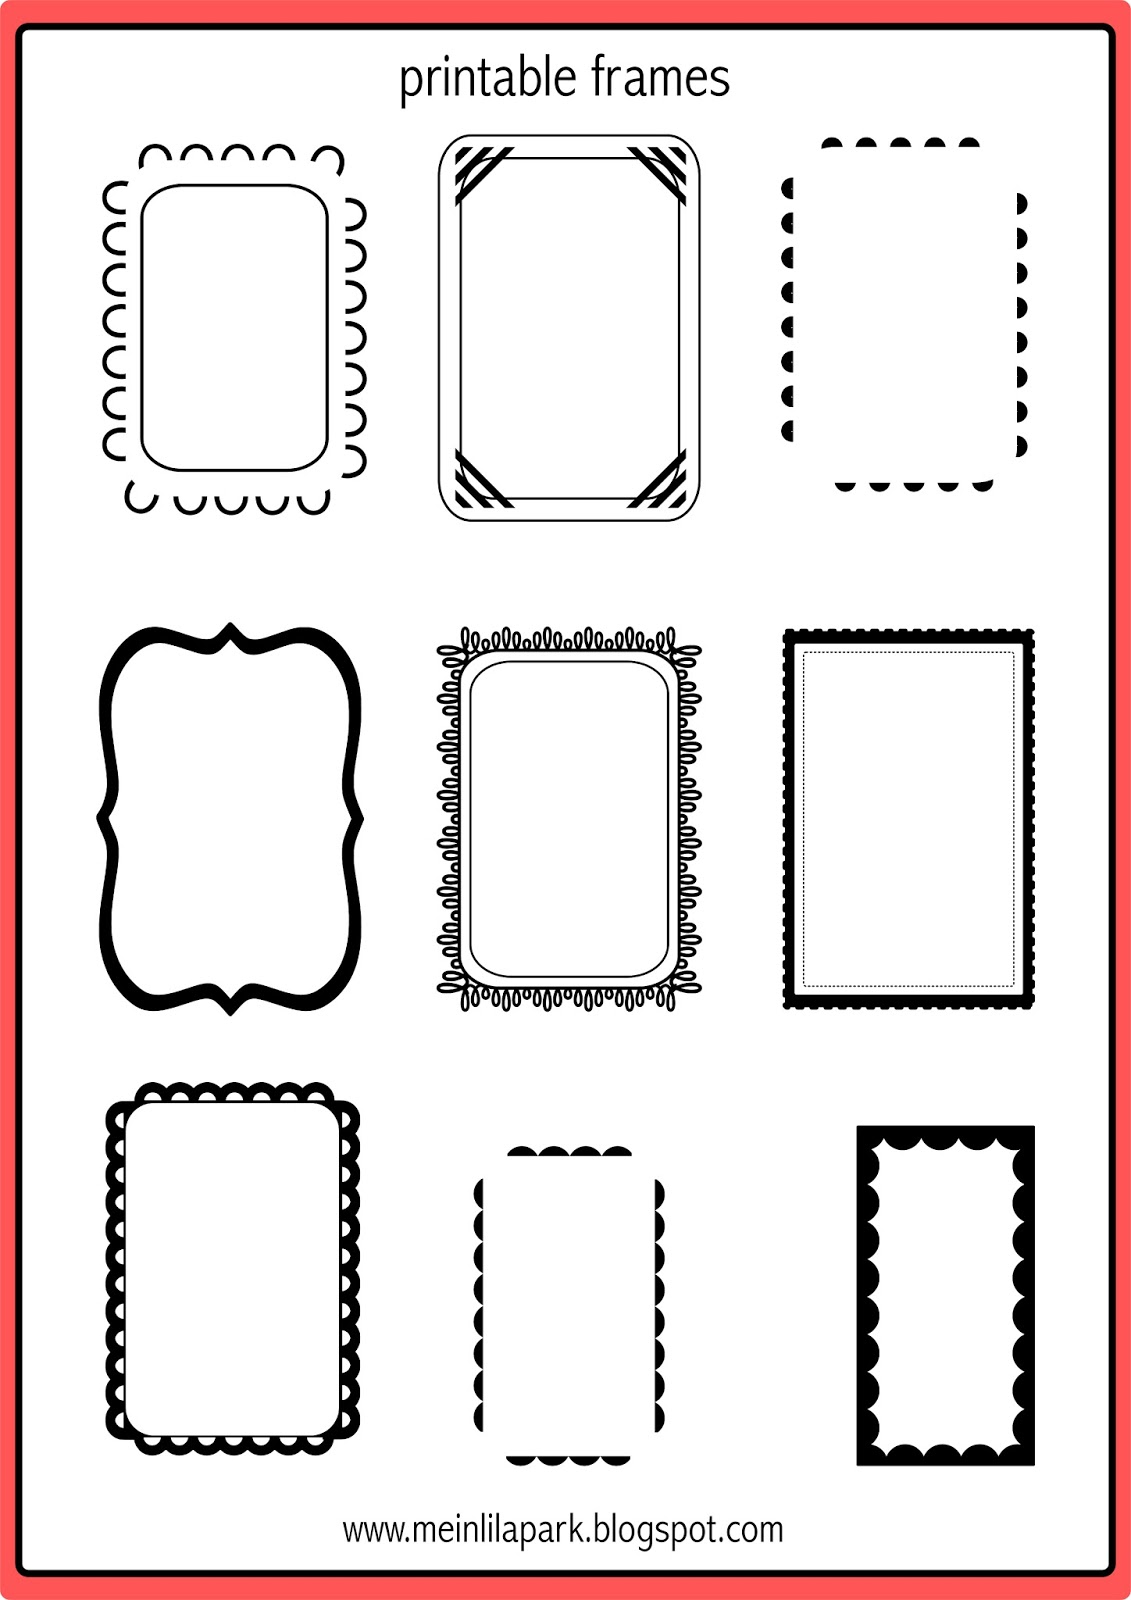 photograph relating to Printable Frames called Totally free printable doodle frames - bullet magazine template